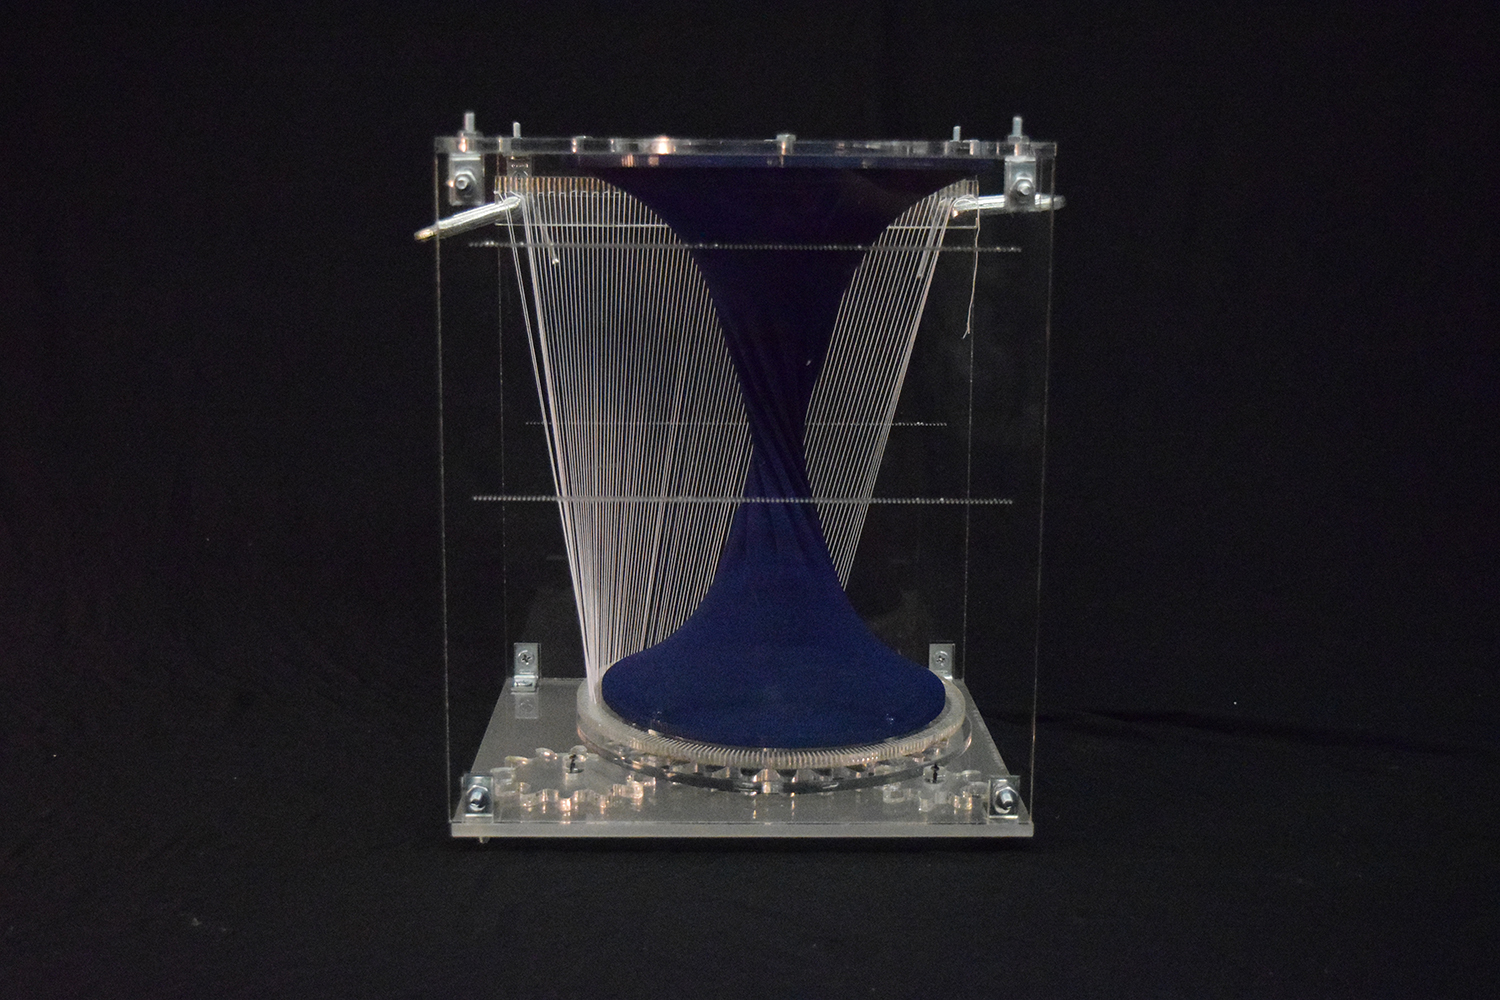 acrylic box holding navy textile form and band of strings inside